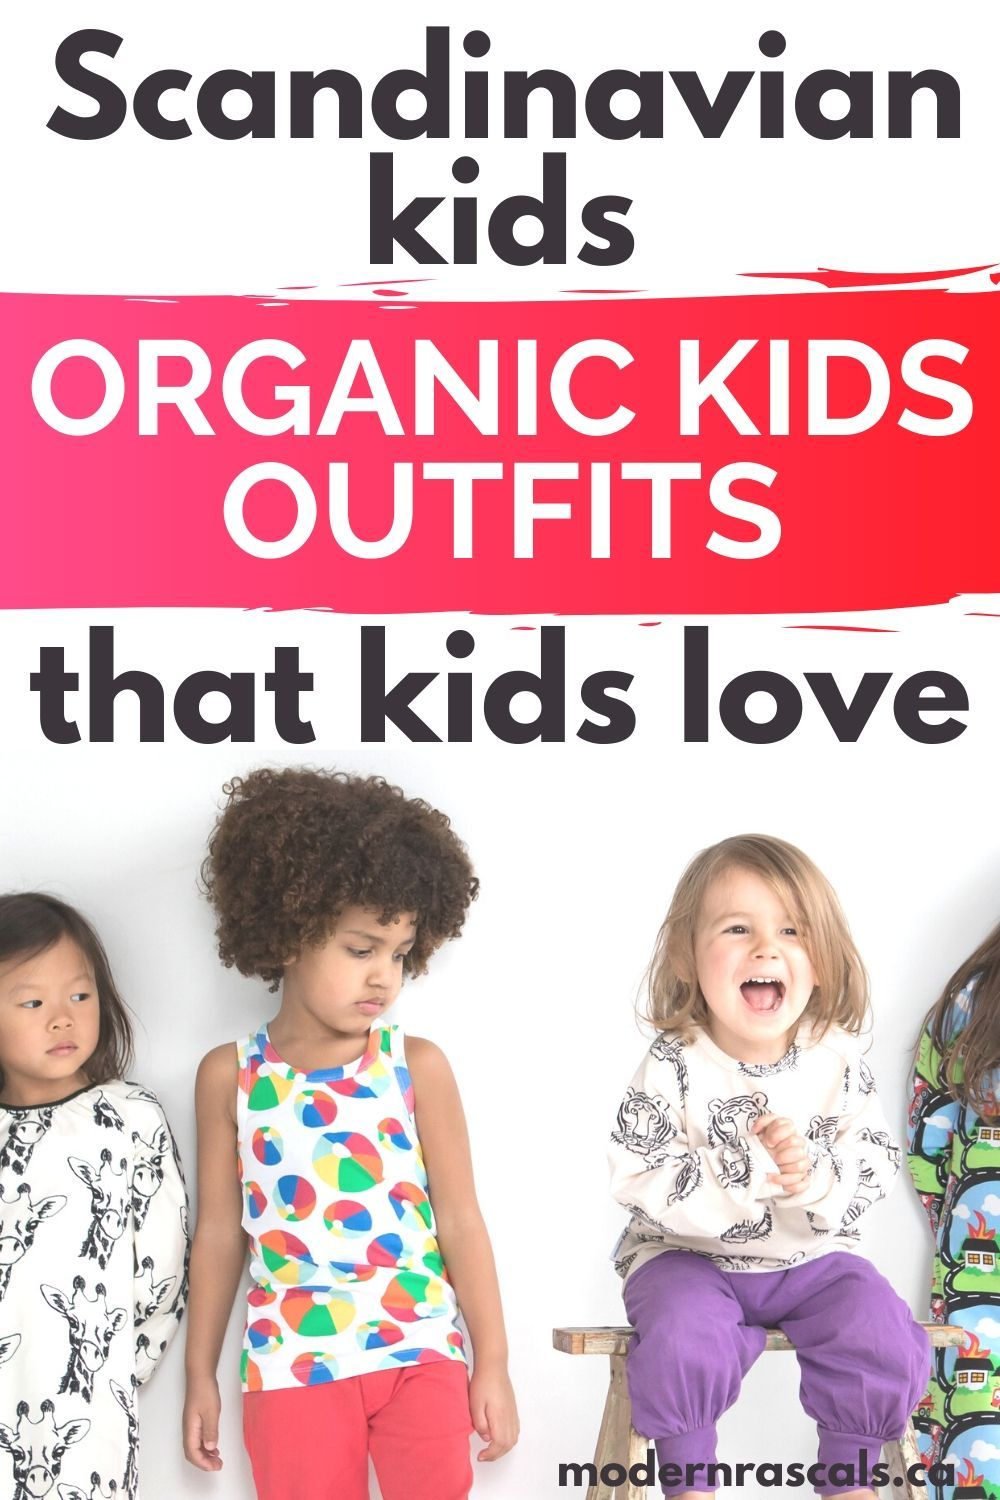 Organic Kids Outfits With Clothing That Kids Love In 2020 Organic Kids Products Organic Kids Clothes Scandinavian Kids Clothes